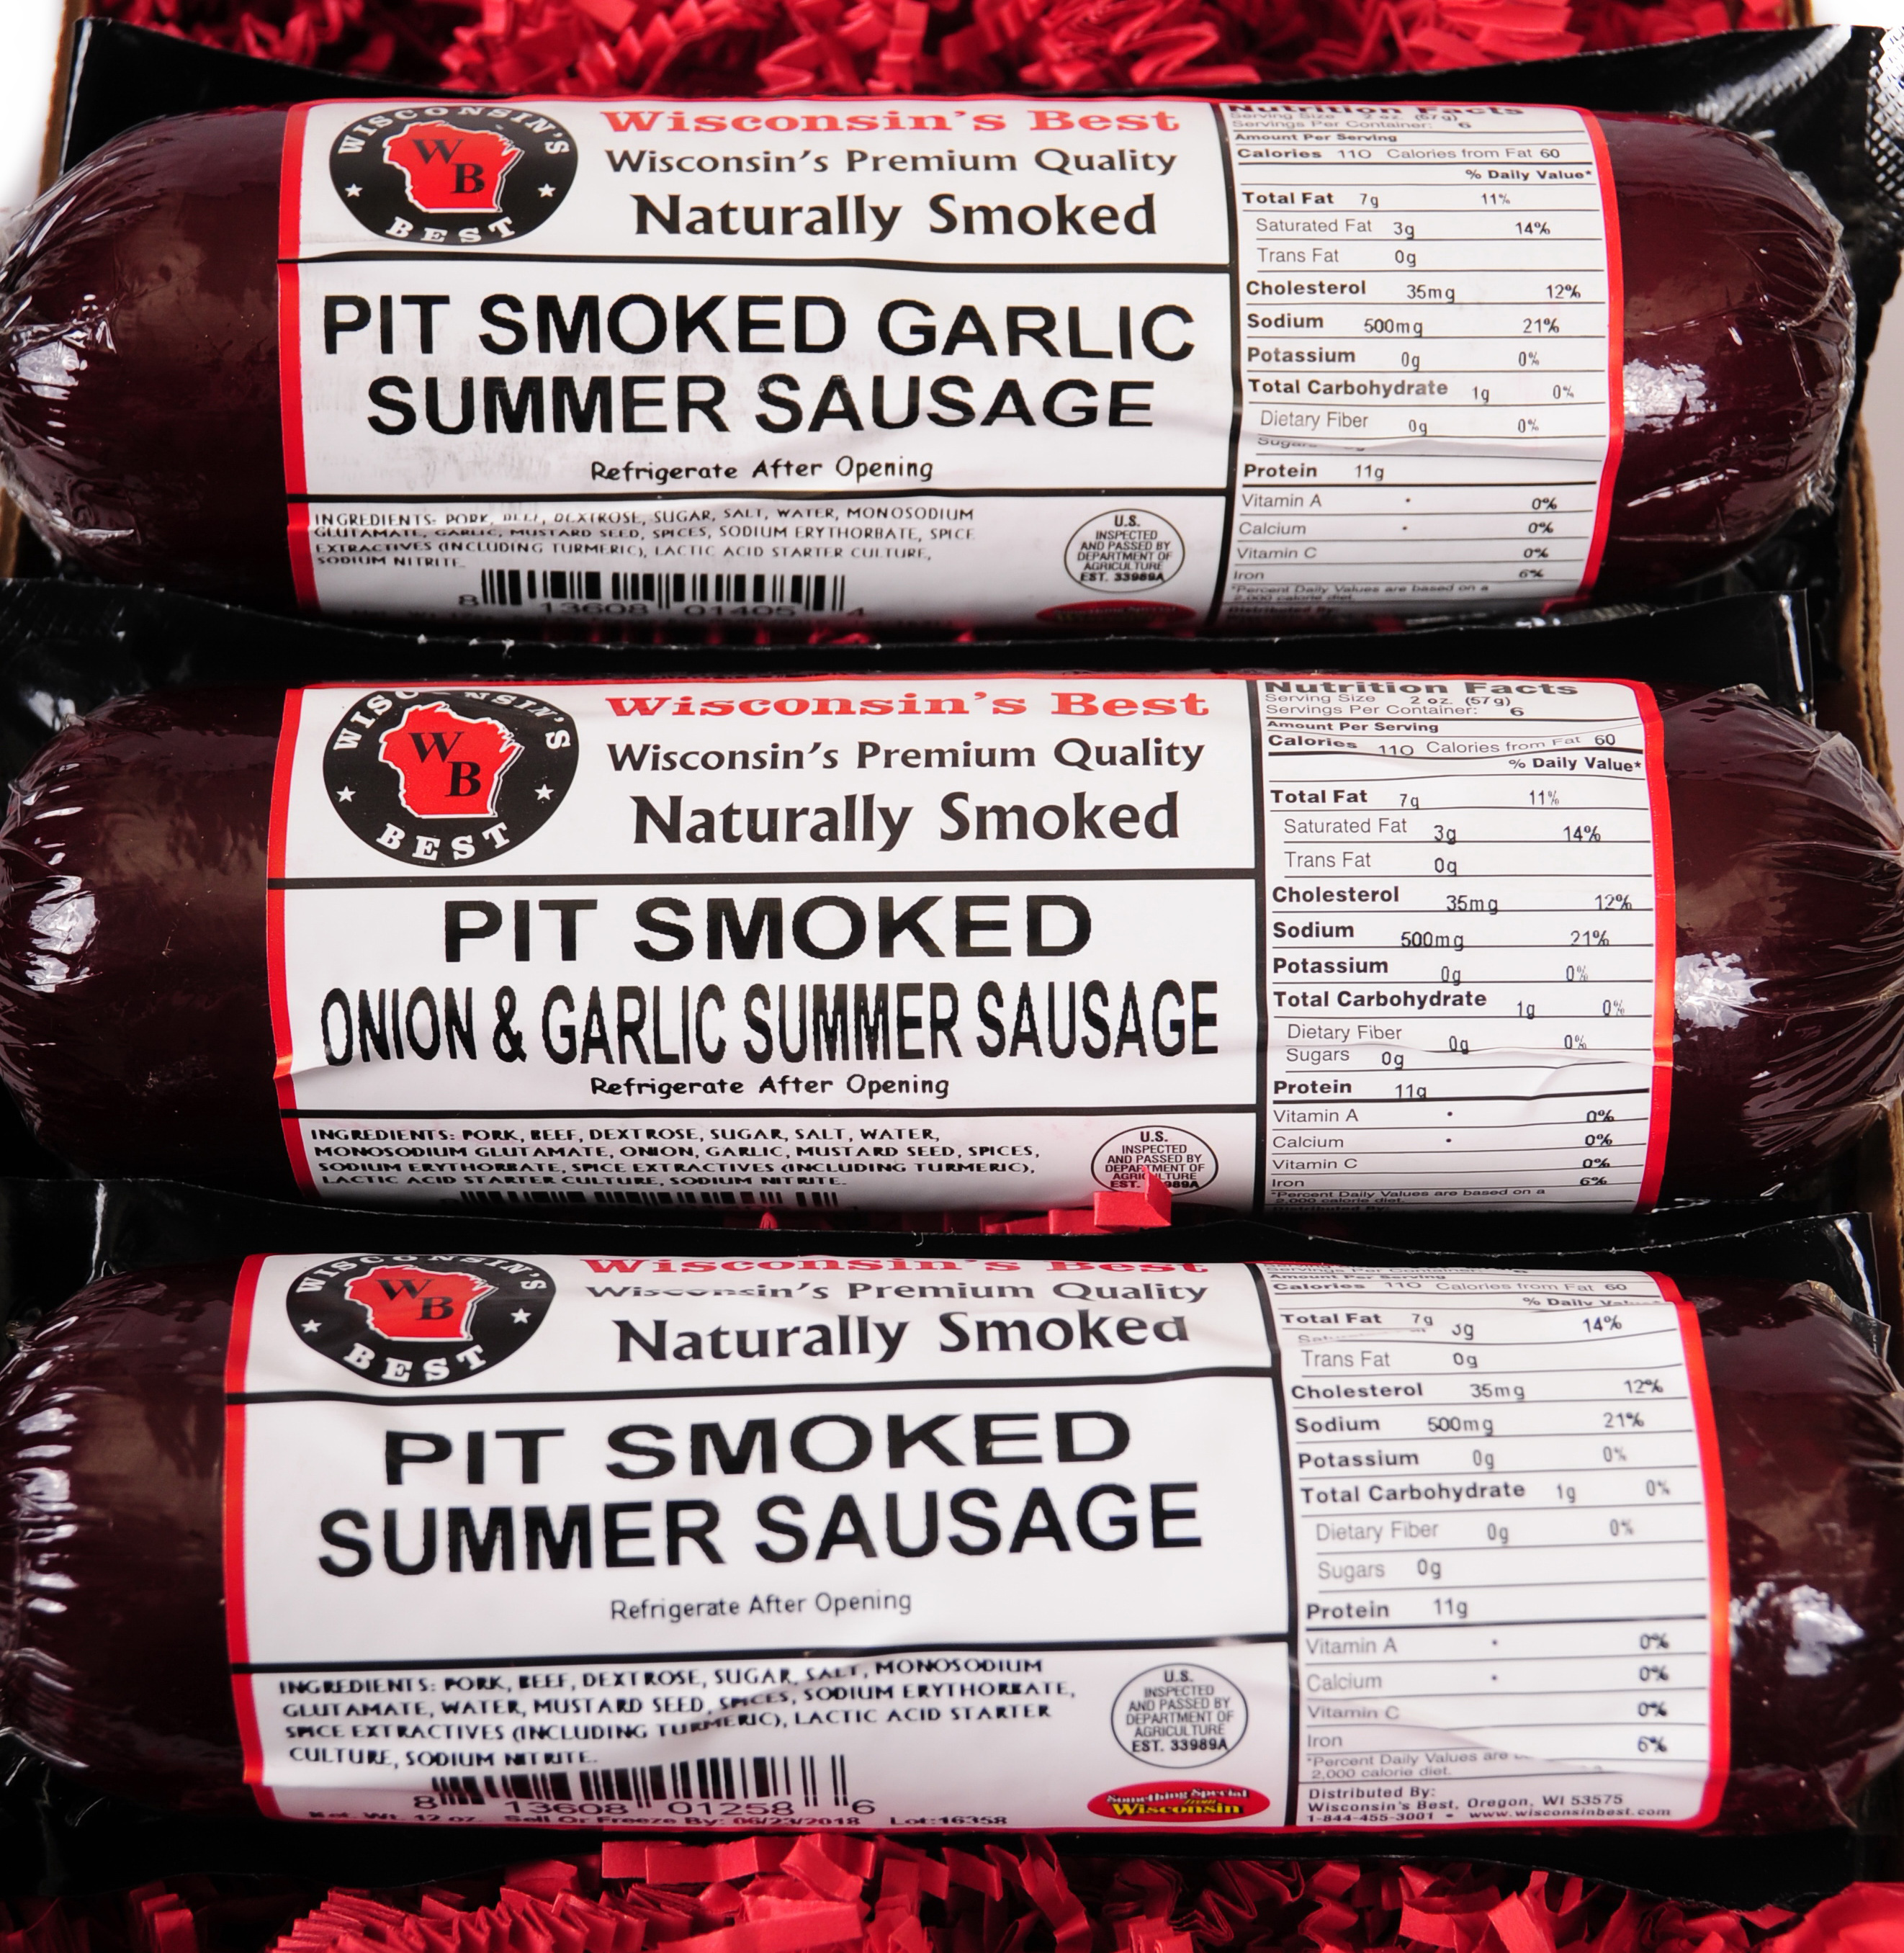 PIT Smoked Summer Sausages SAMPLER Gift WISCONSIN'S BEST features Garlic, Original, Onion... by Wisconsin's Best, LLC